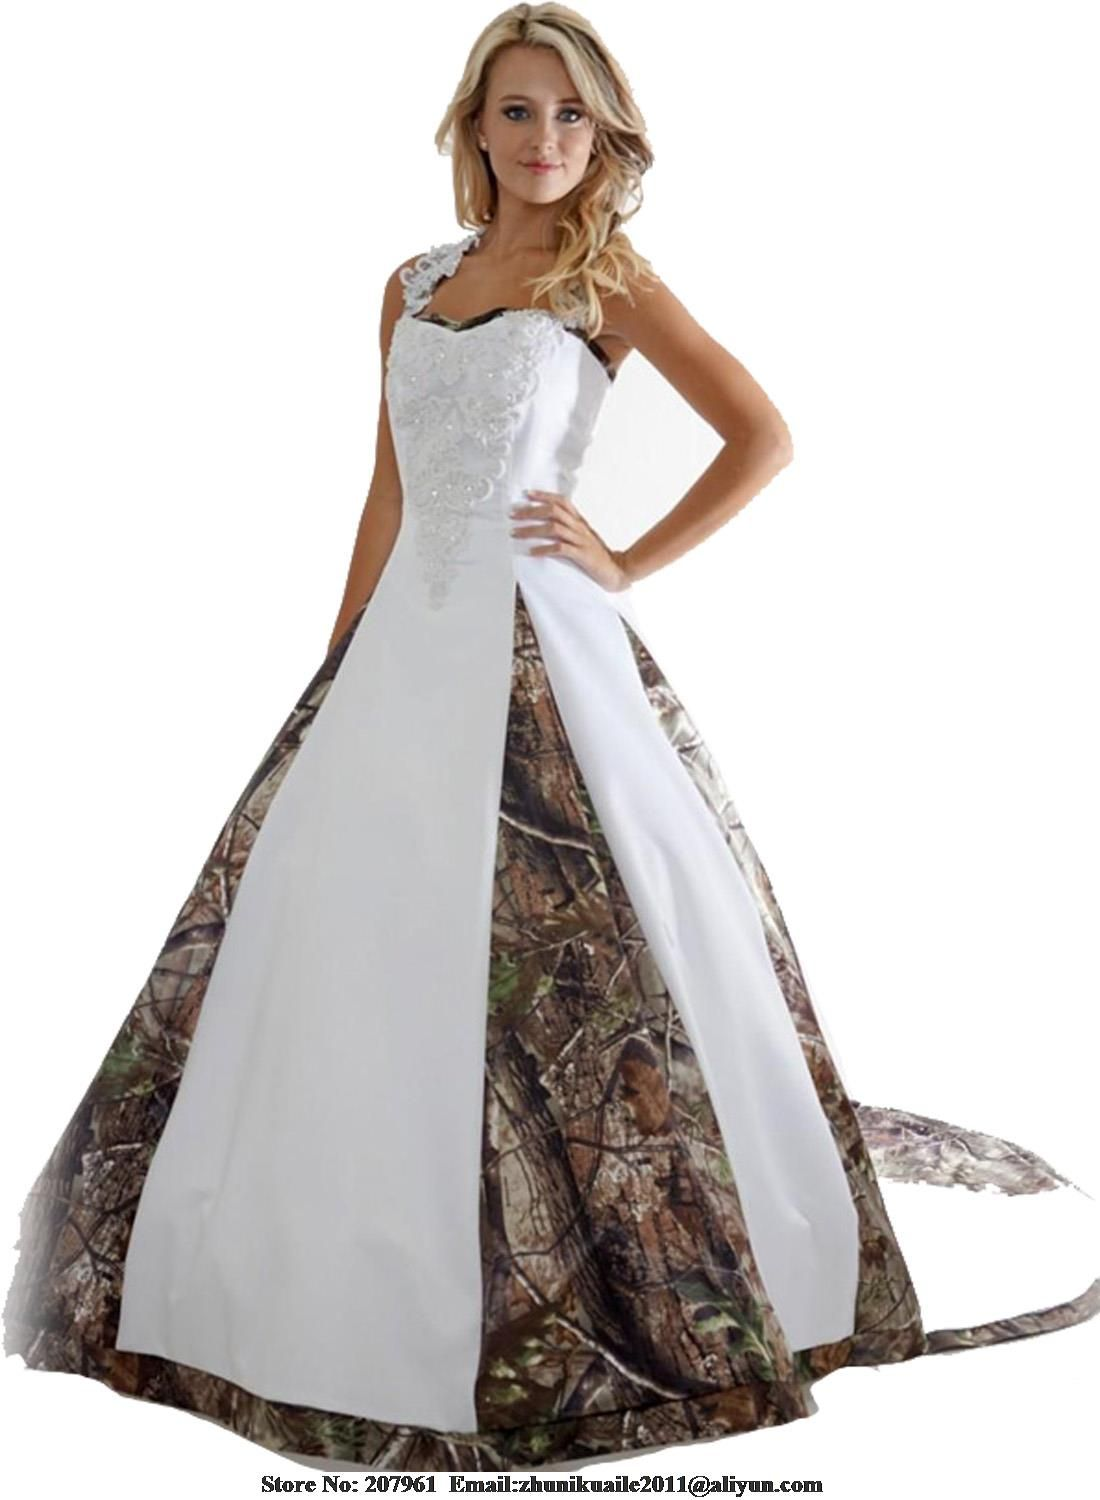 Stock new camo wedding dresses satin camouflage bridal gown